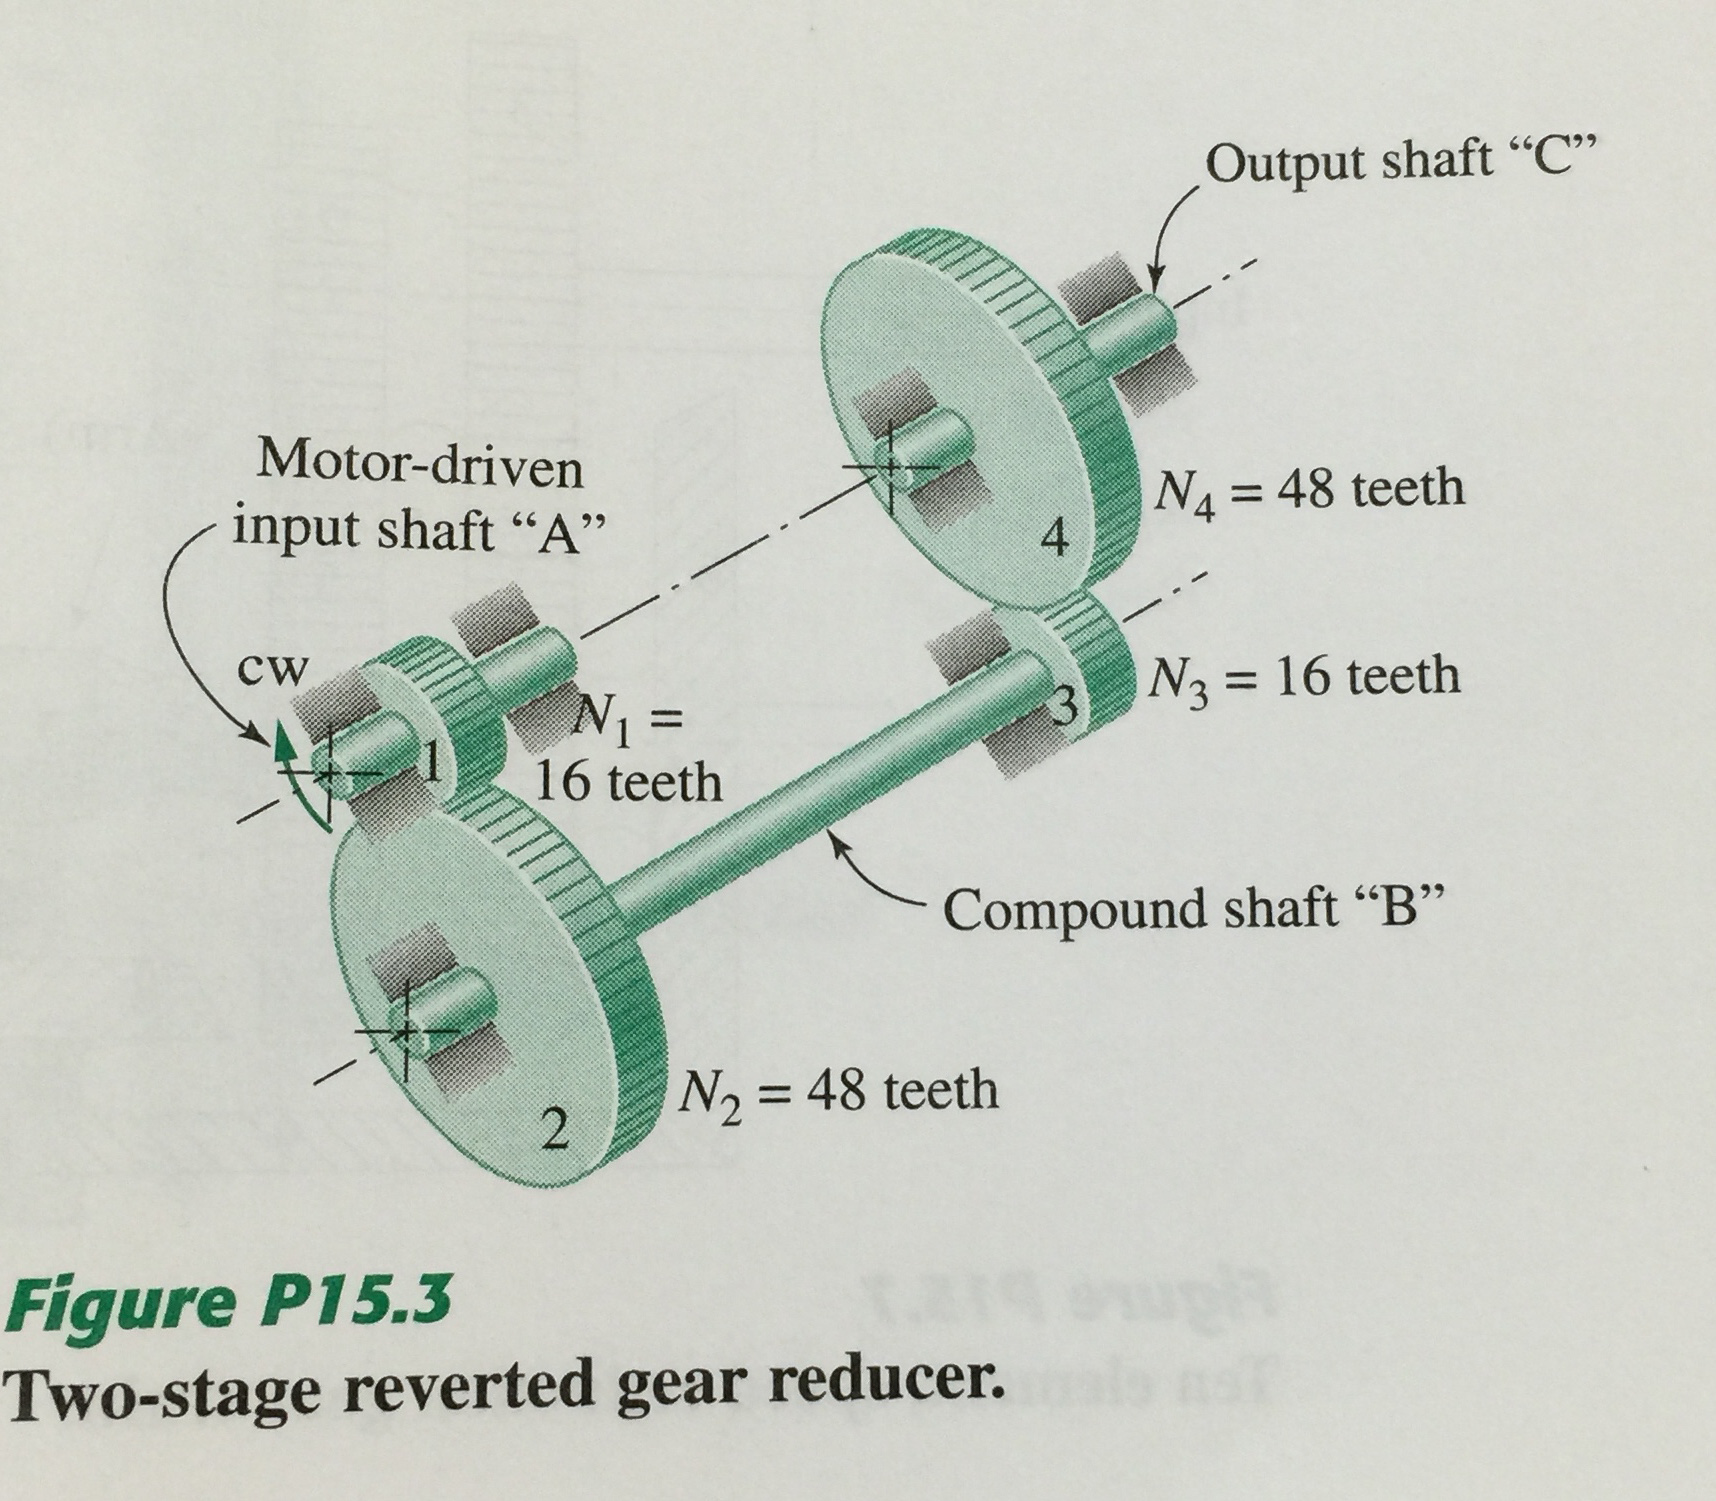 question: the sketch of figure p15 3 shows a two-stage reverted gear  reducer that utilizes two identical pairs of gears to enable making the  input shaft and